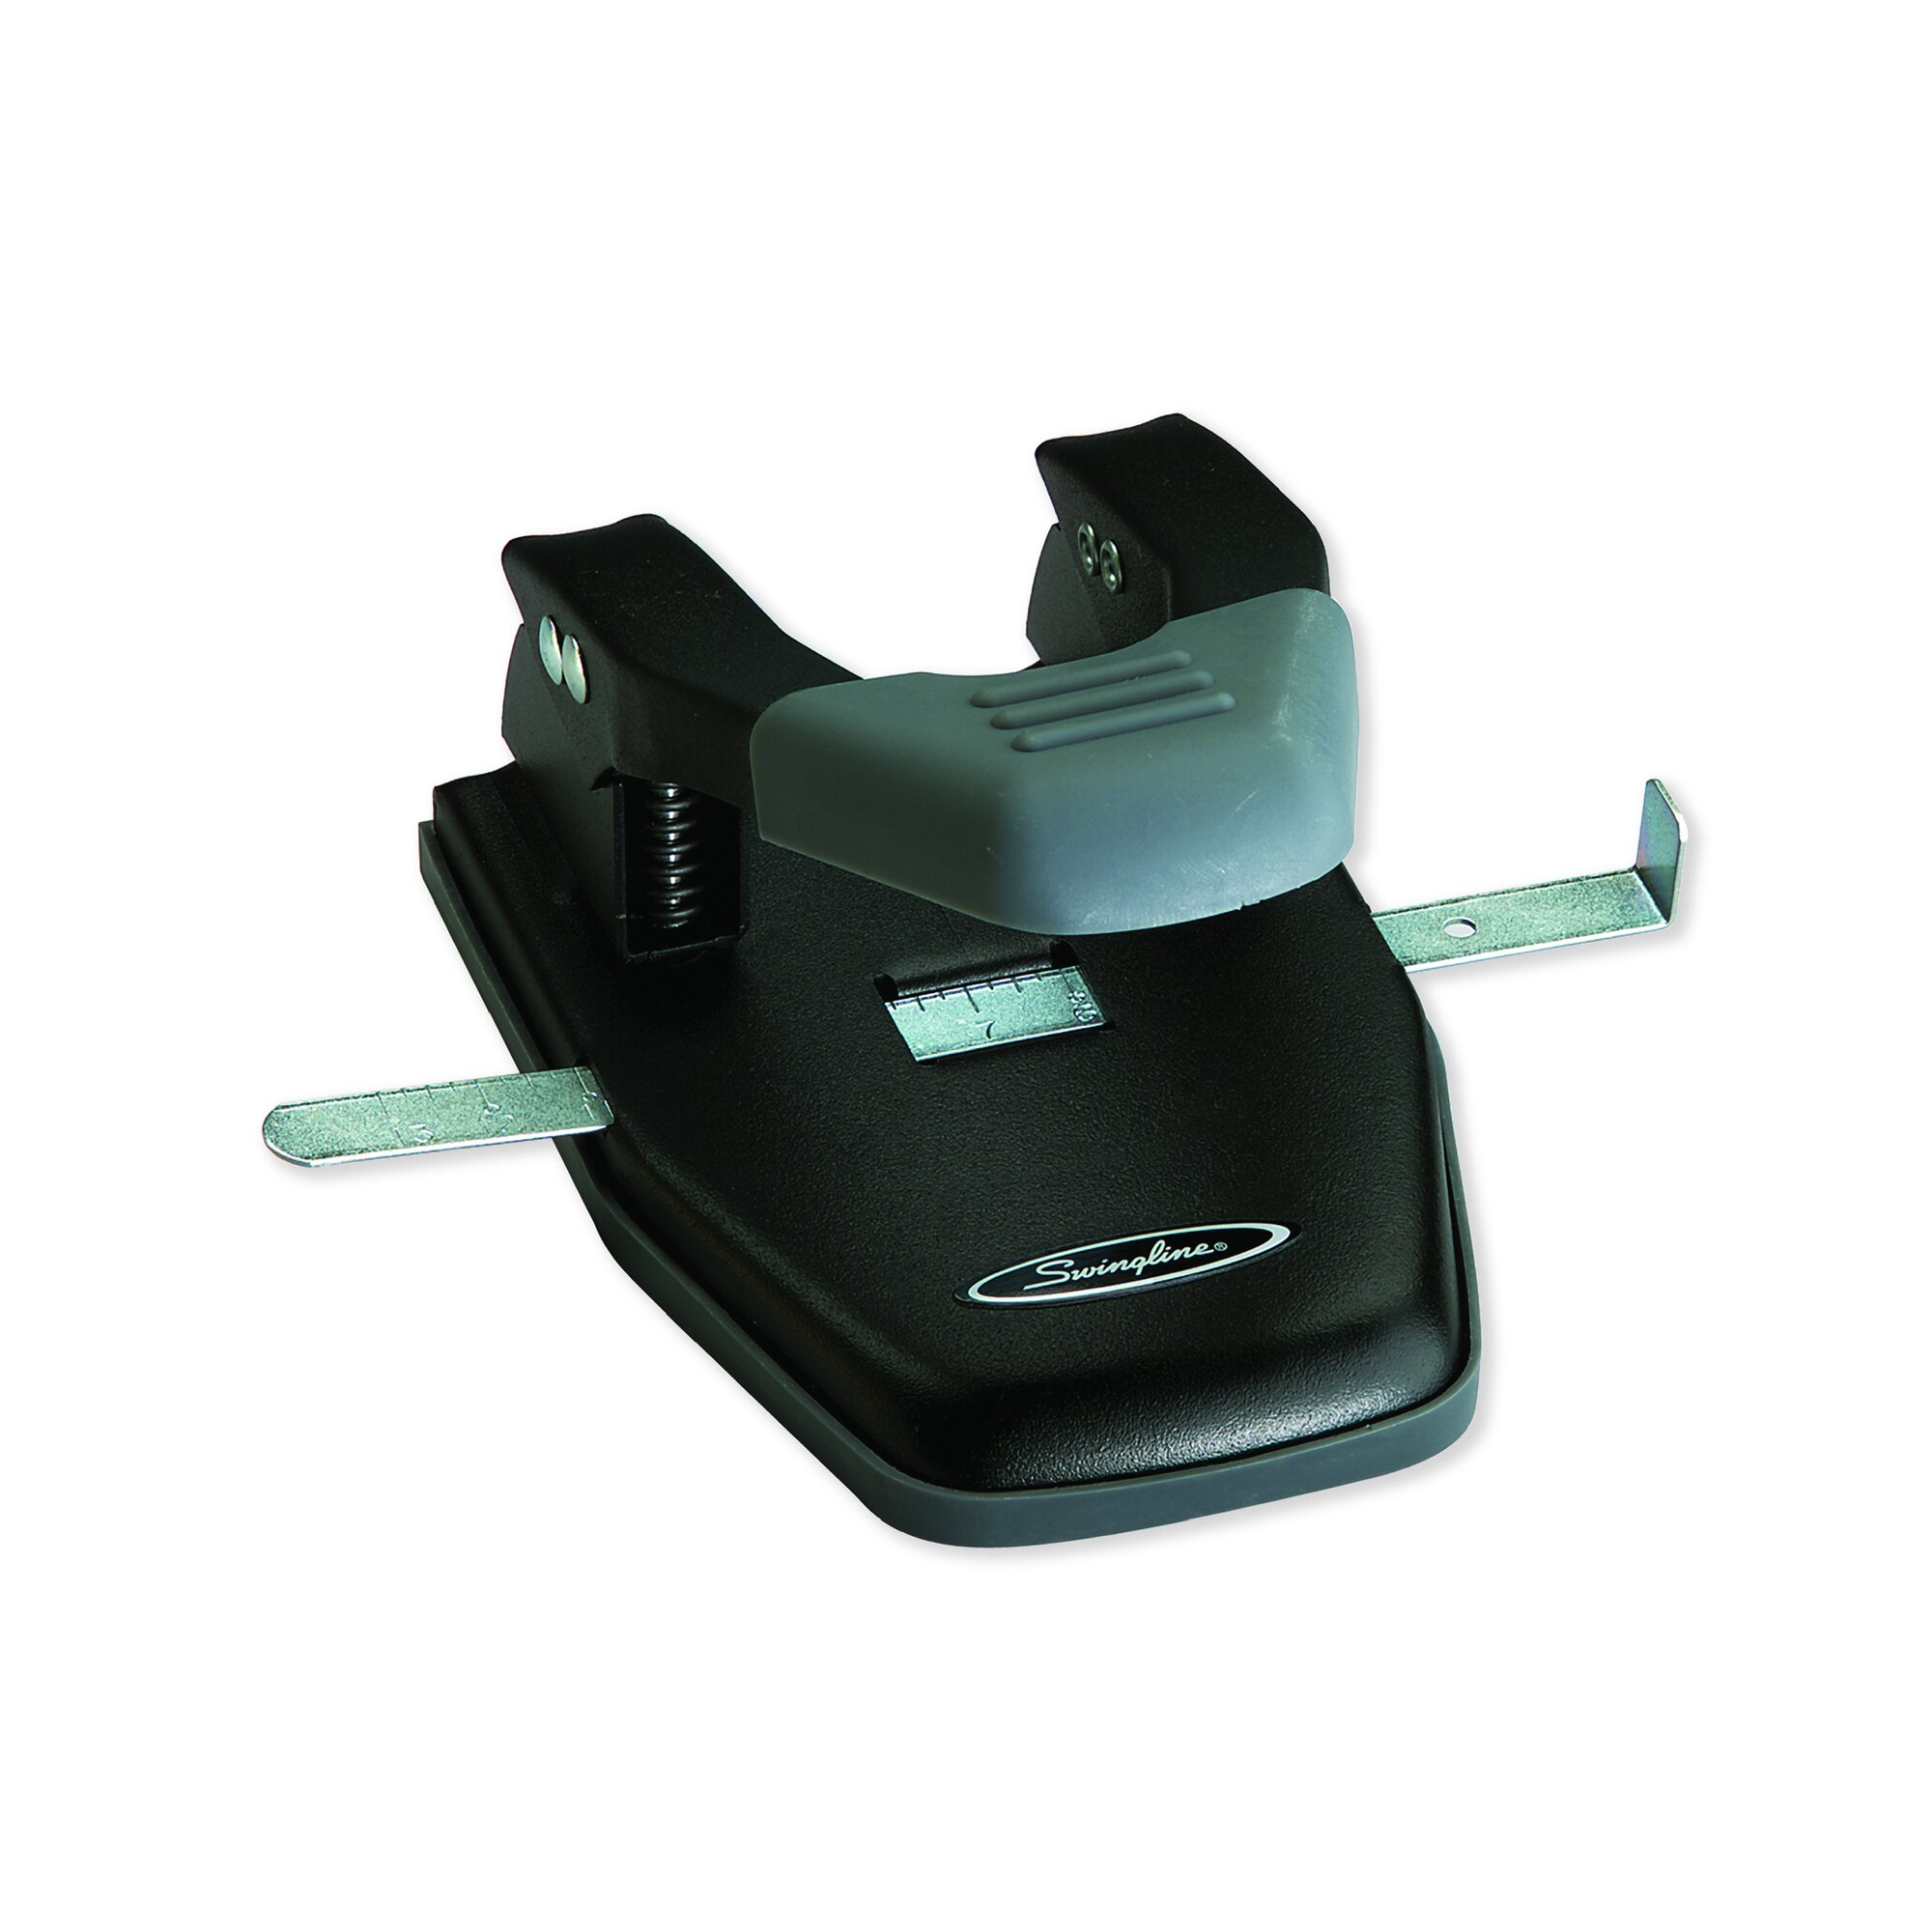 "28-Sheet Comfort Handle Steel Two-Hole Punch, 1/4"" Holes, Black/Gray"